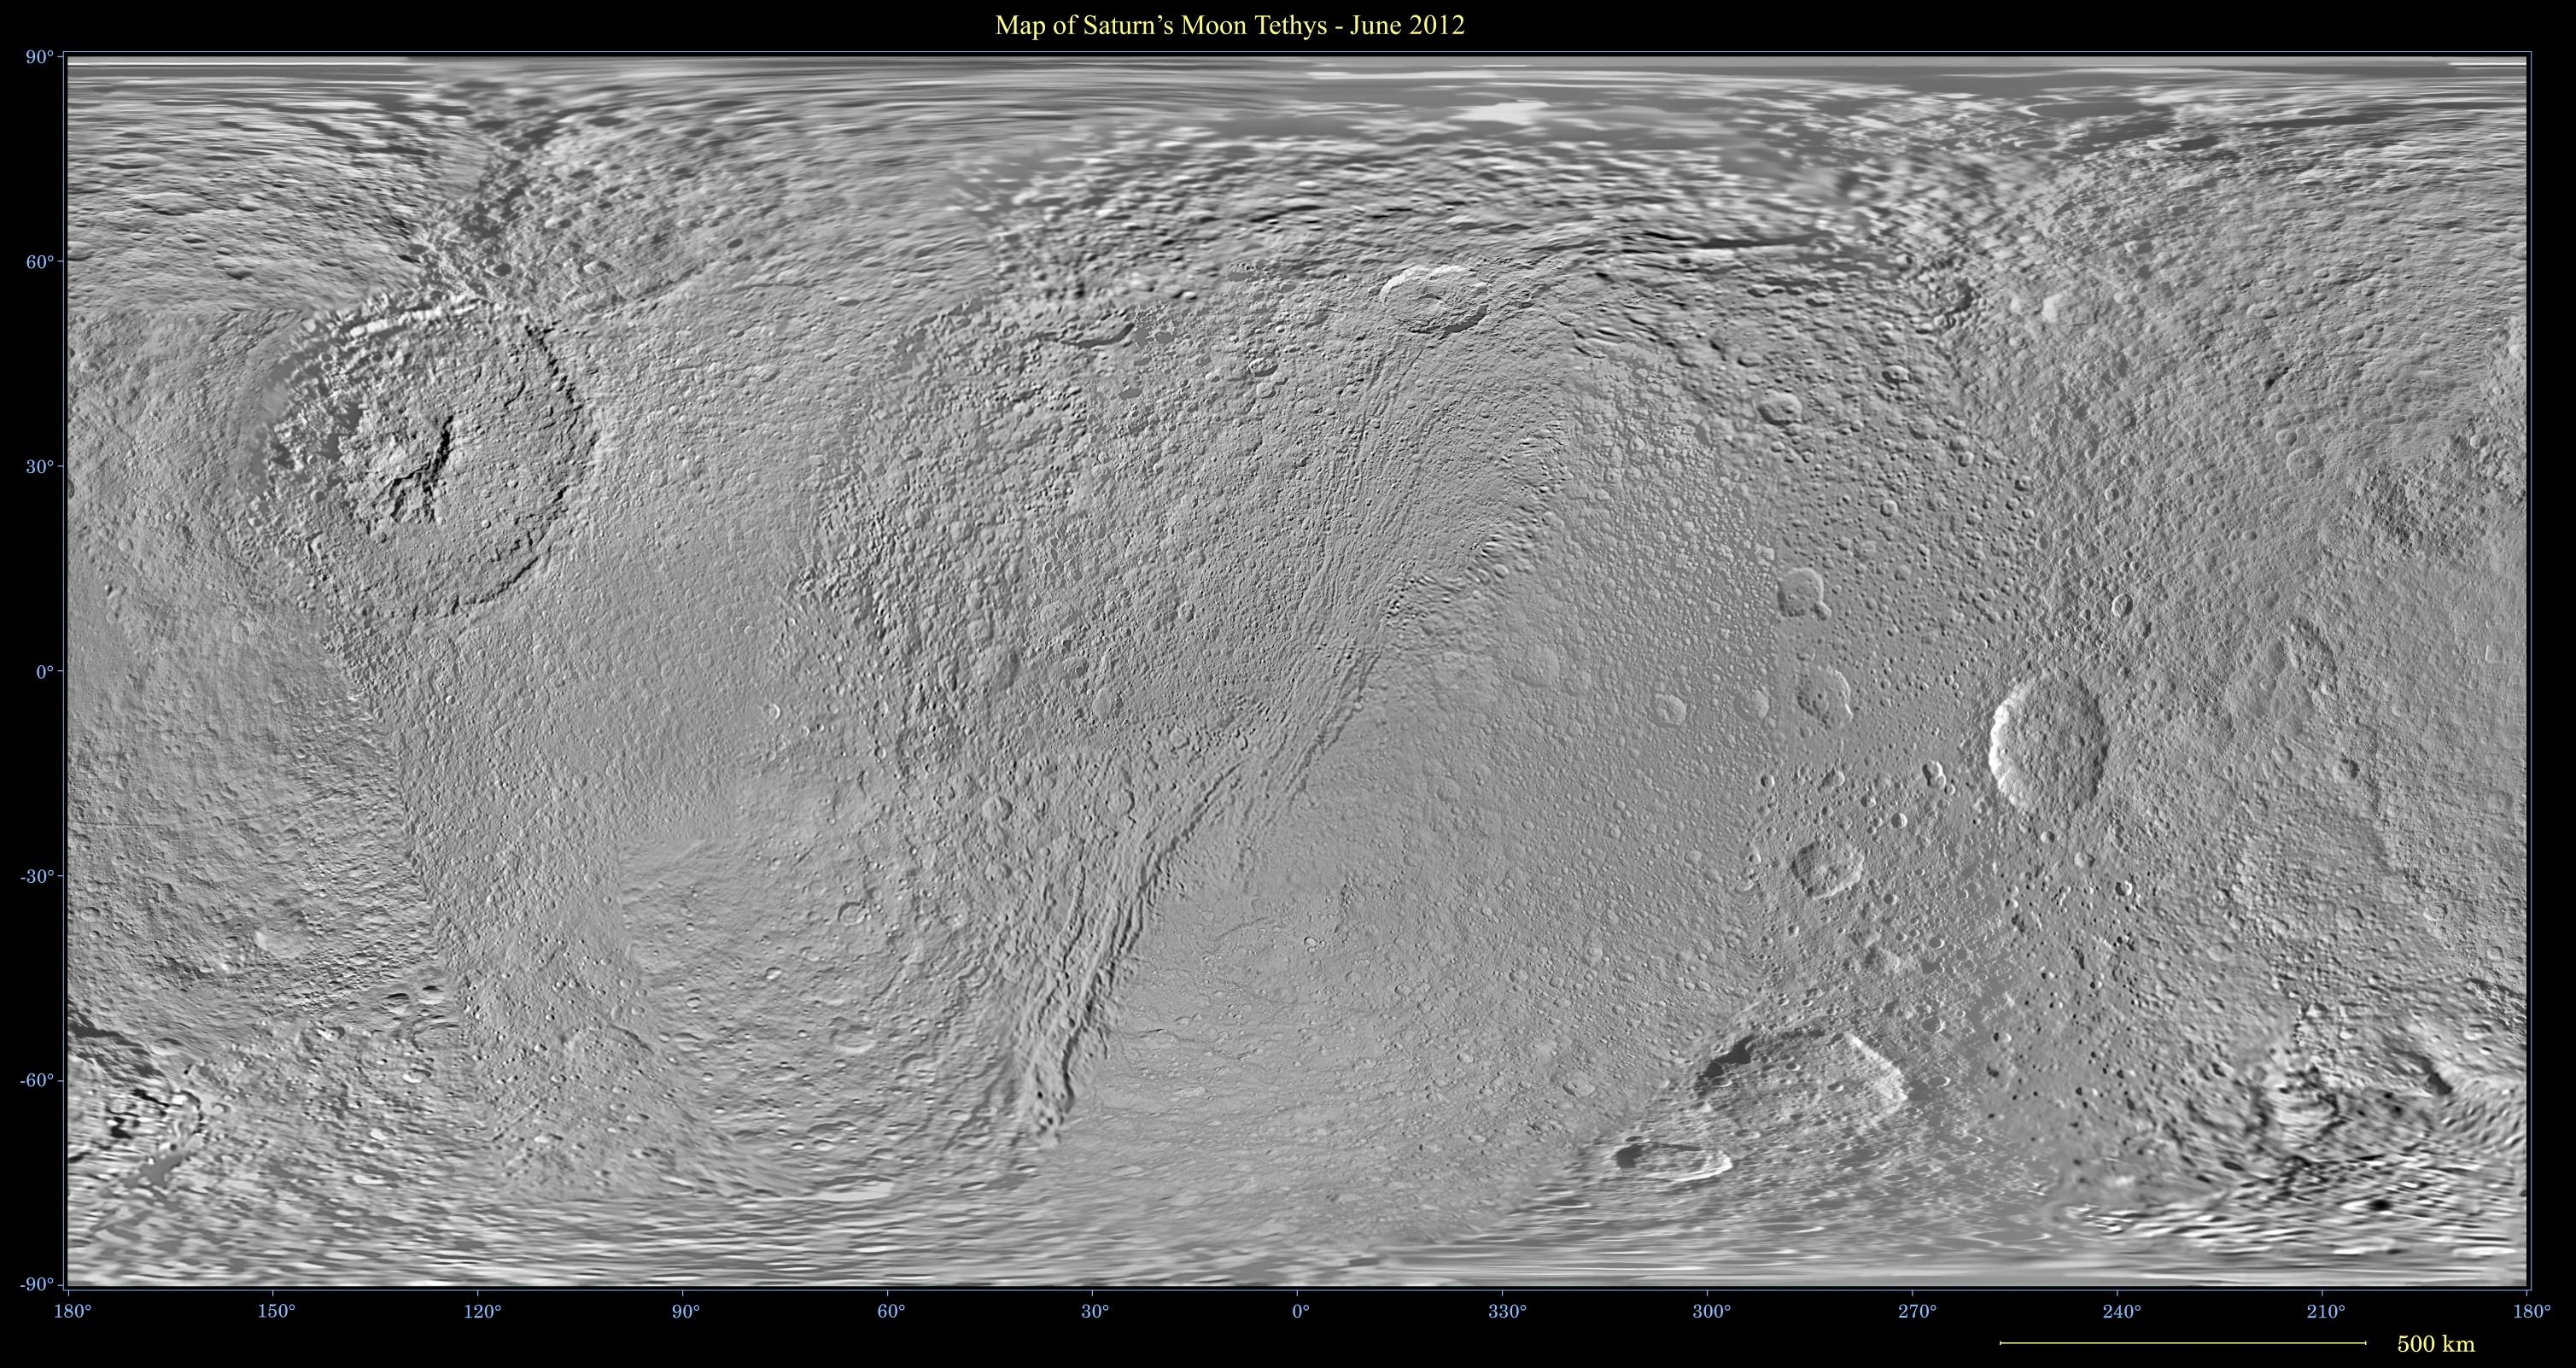 This global map of Saturn's moon Tethys was created using images taken during Cassini spacecraft flybys.